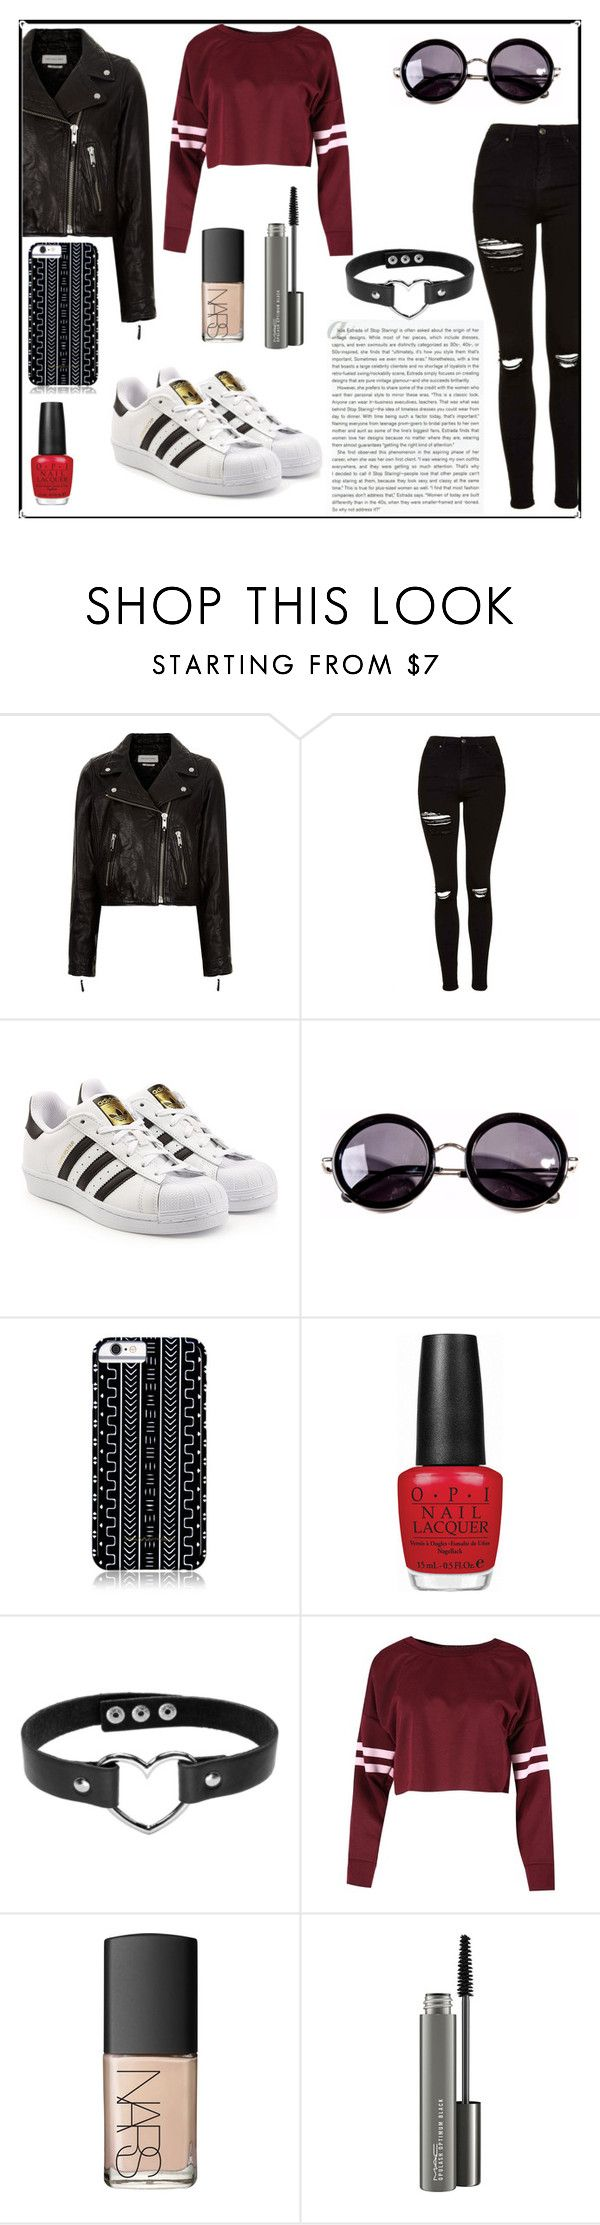 """Untitled #5"" by majda1003 ❤ liked on Polyvore featuring Étoile Isabel Marant, Topshop, adidas Originals, Linda Farrow, Savannah Hayes, OPI, Stop Staring!, NARS Cosmetics and MAC Cosmetics"